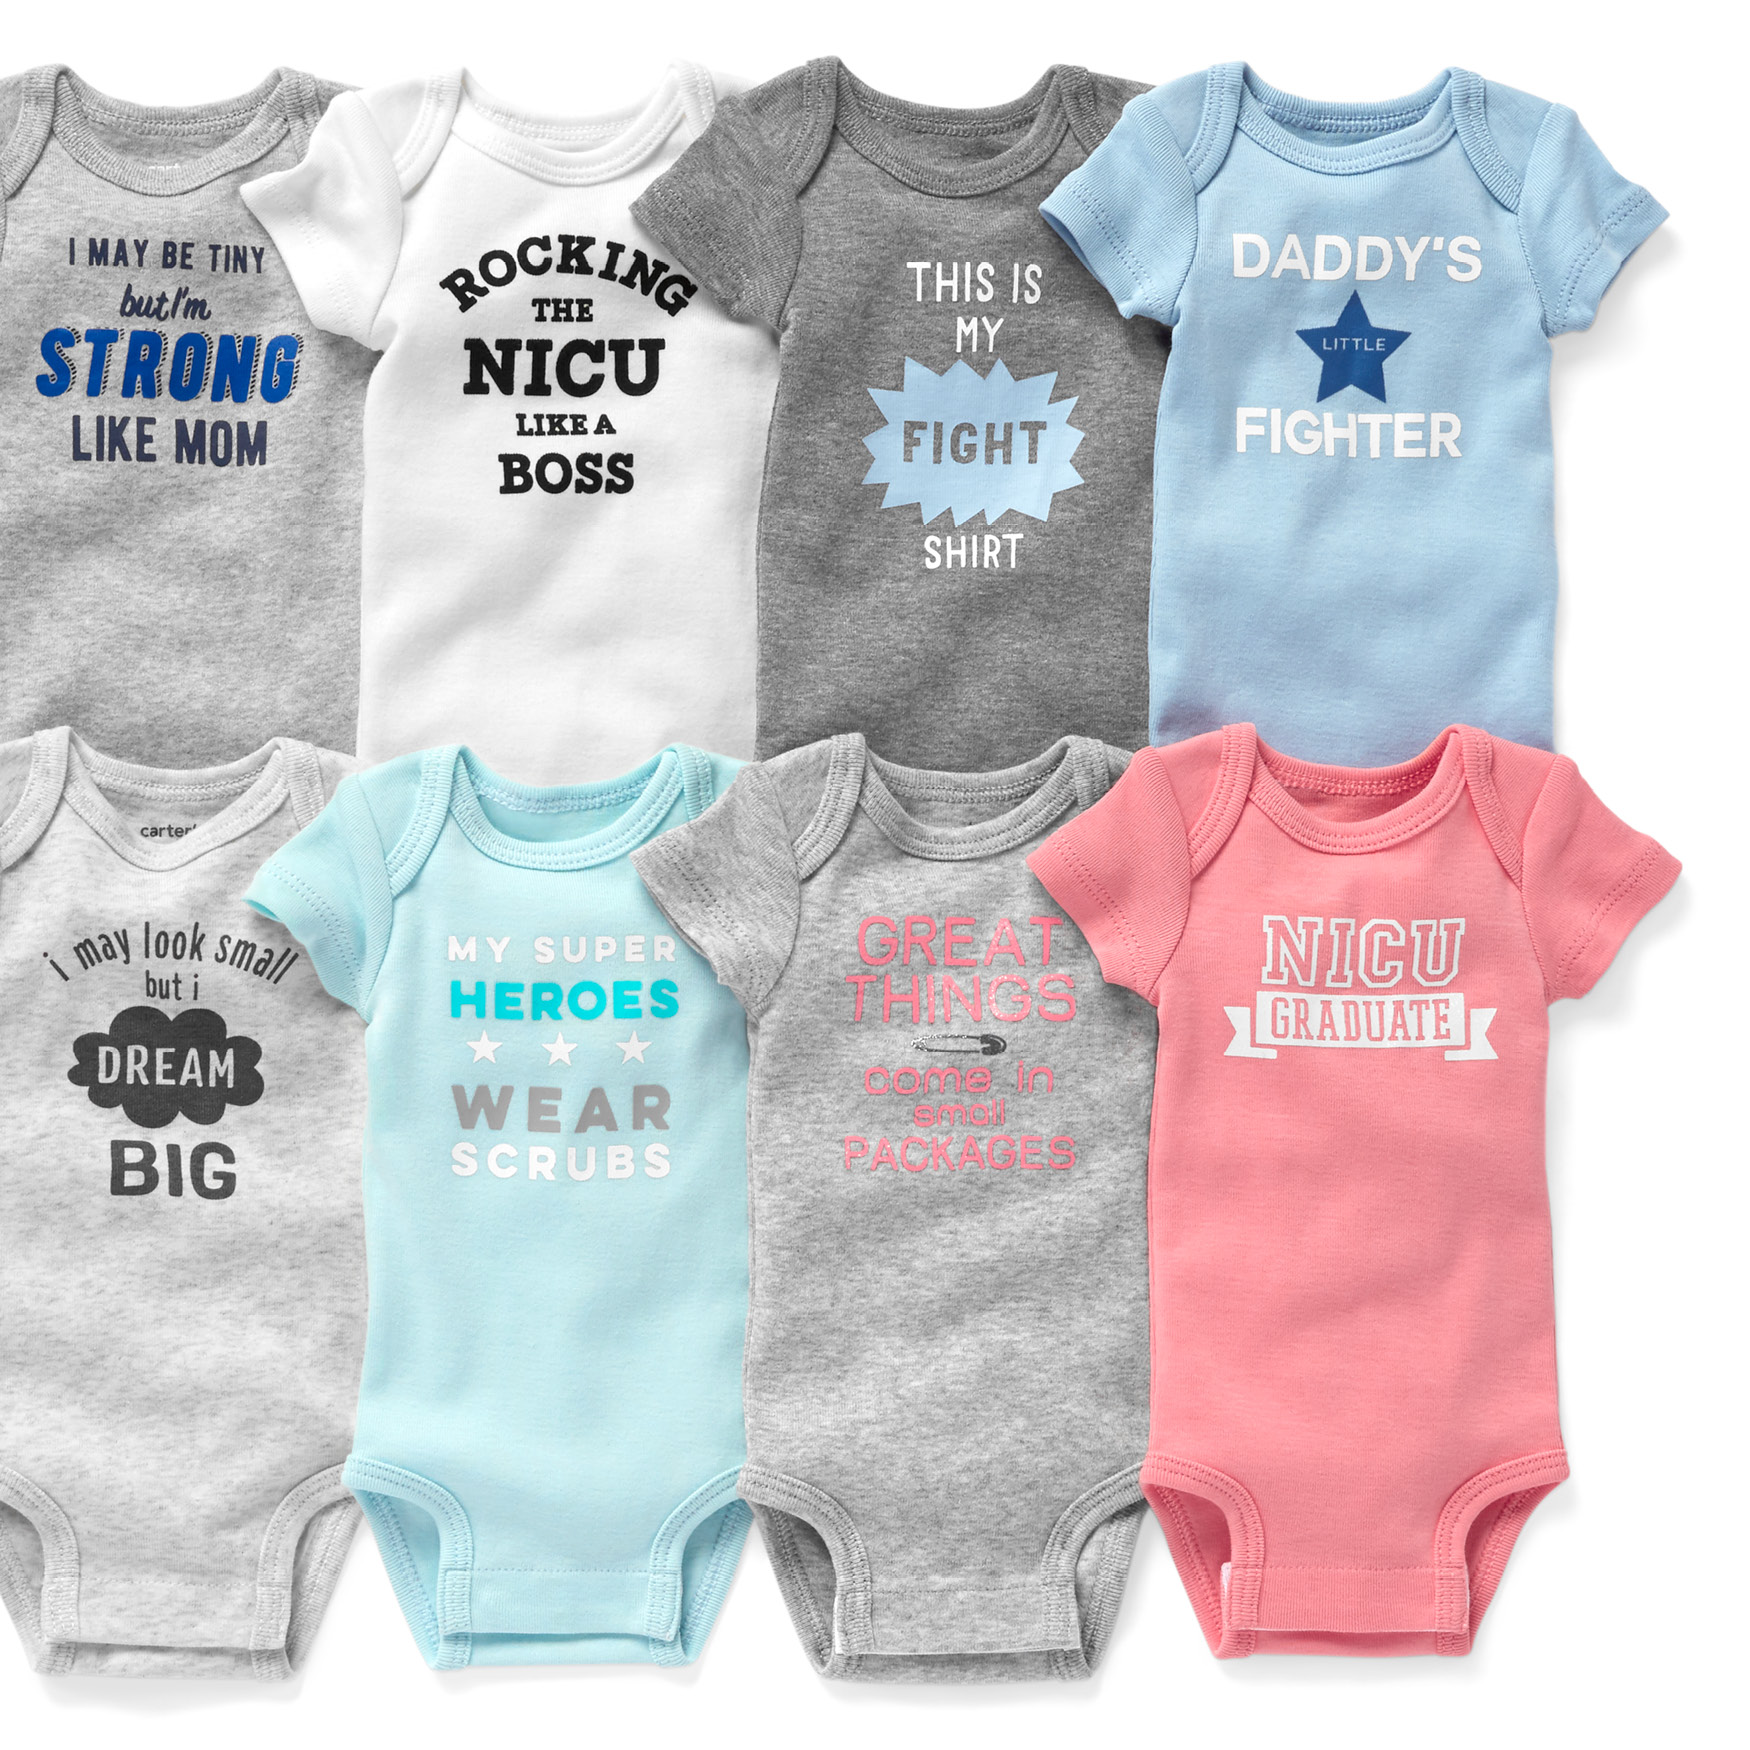 Adorable) Gifts for Preemie Babies